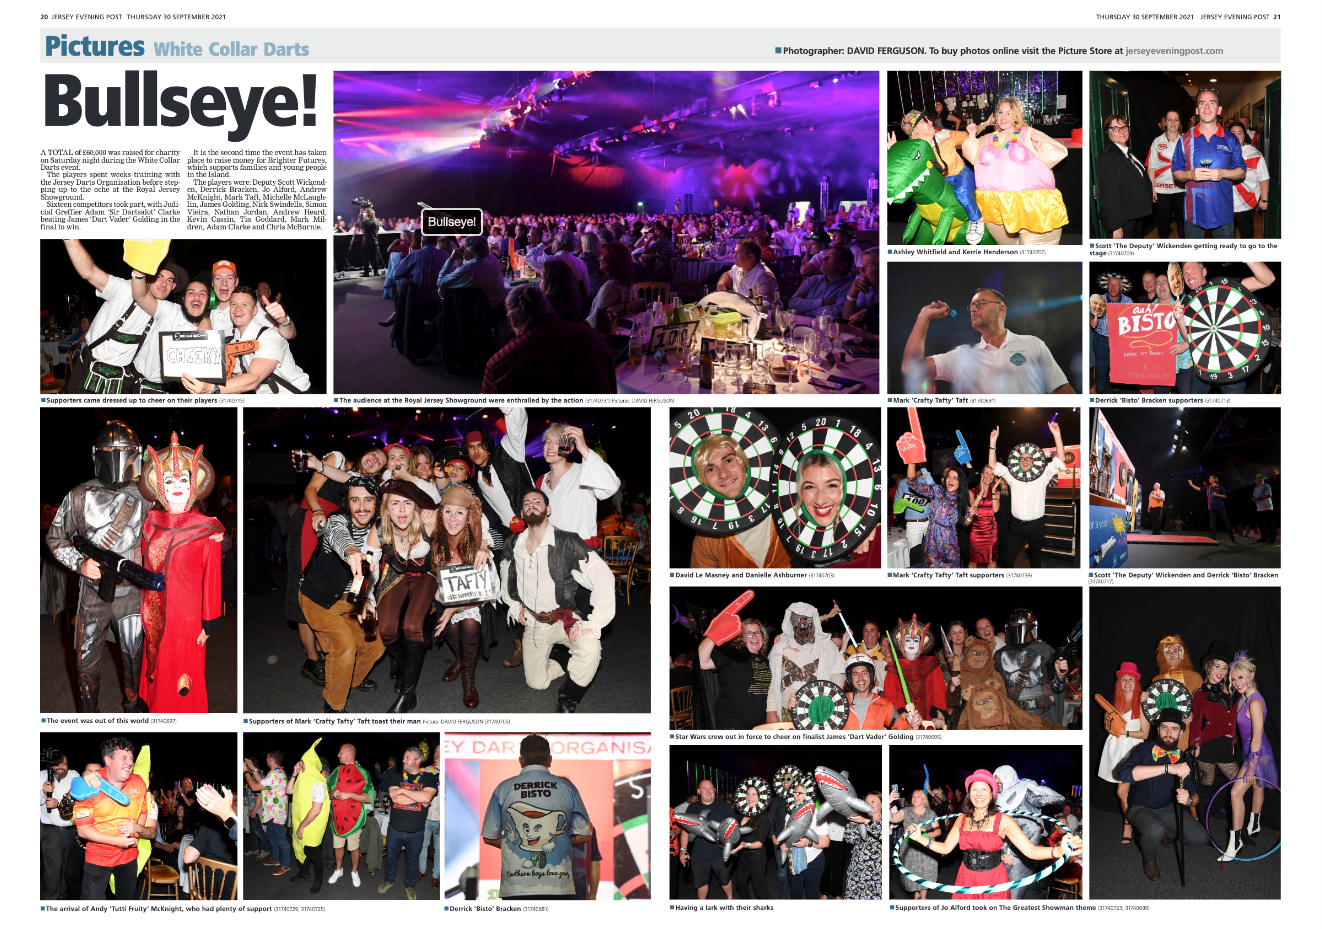 Bullseye - The JEP's coverage of our amazing event